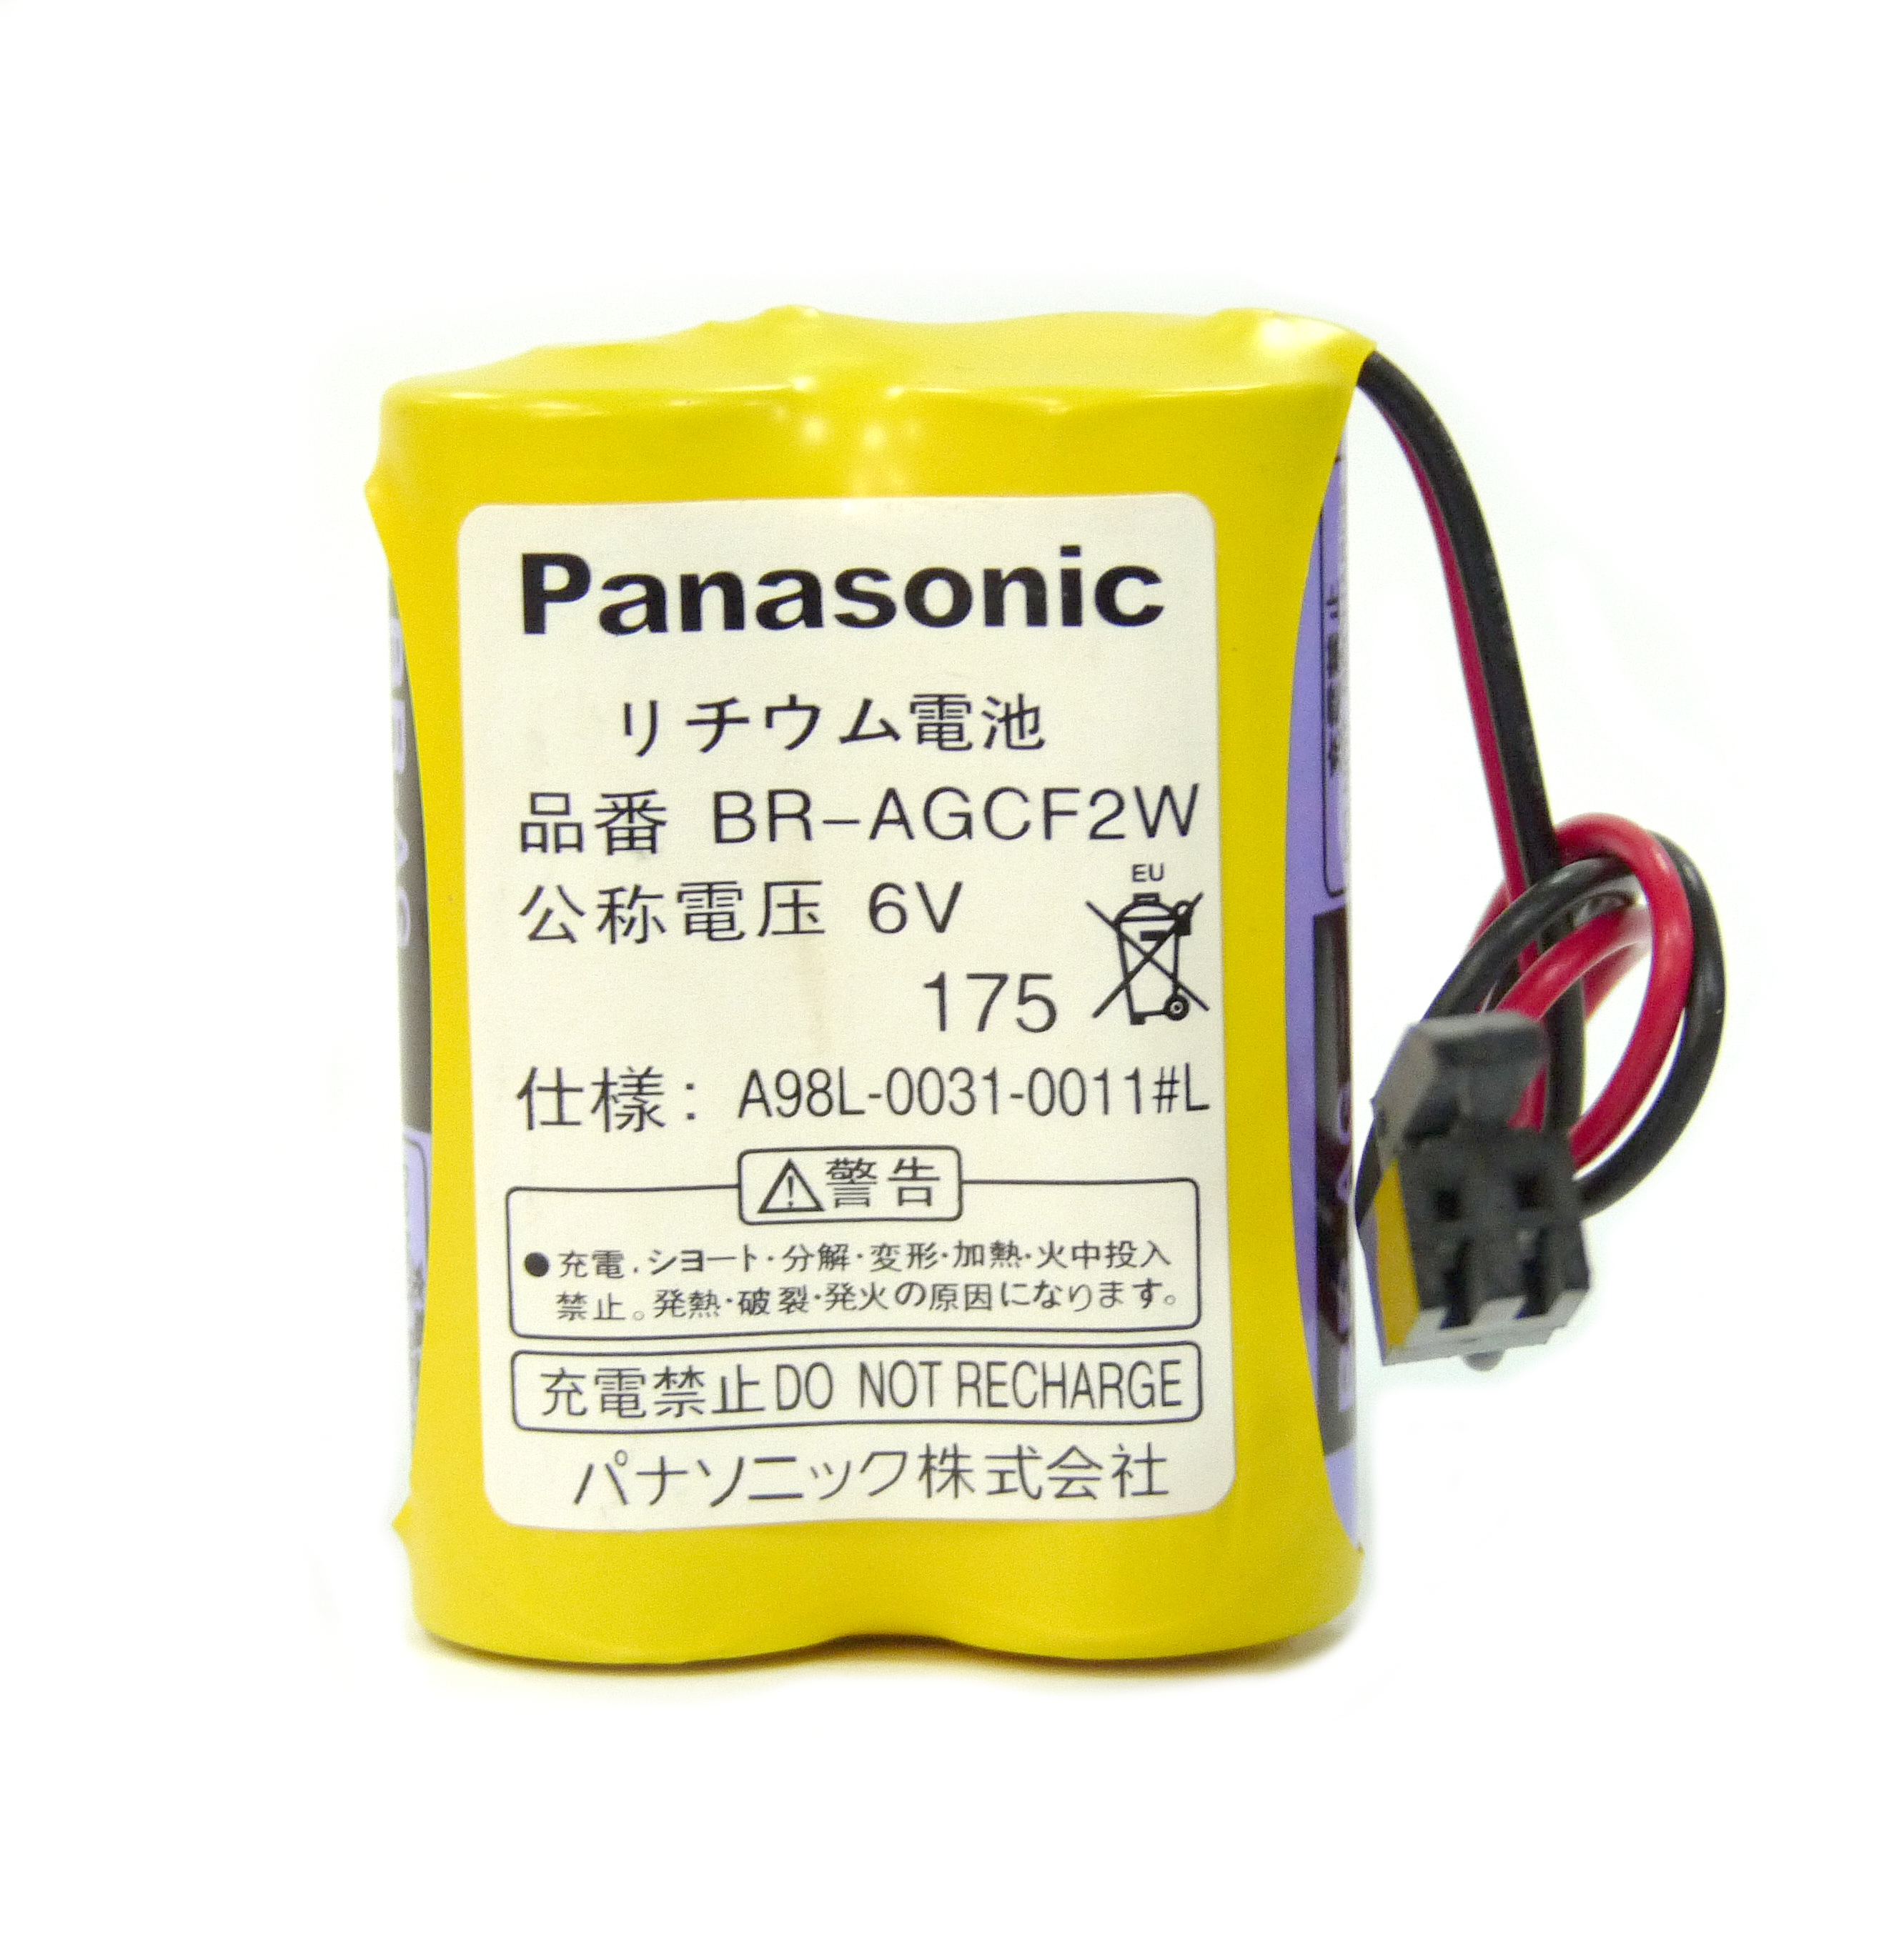 Panasonic Sealed Lead Acid Battery Ups Cr123a Cr2 Wiring Devices Philippines Br Agcf2w 175